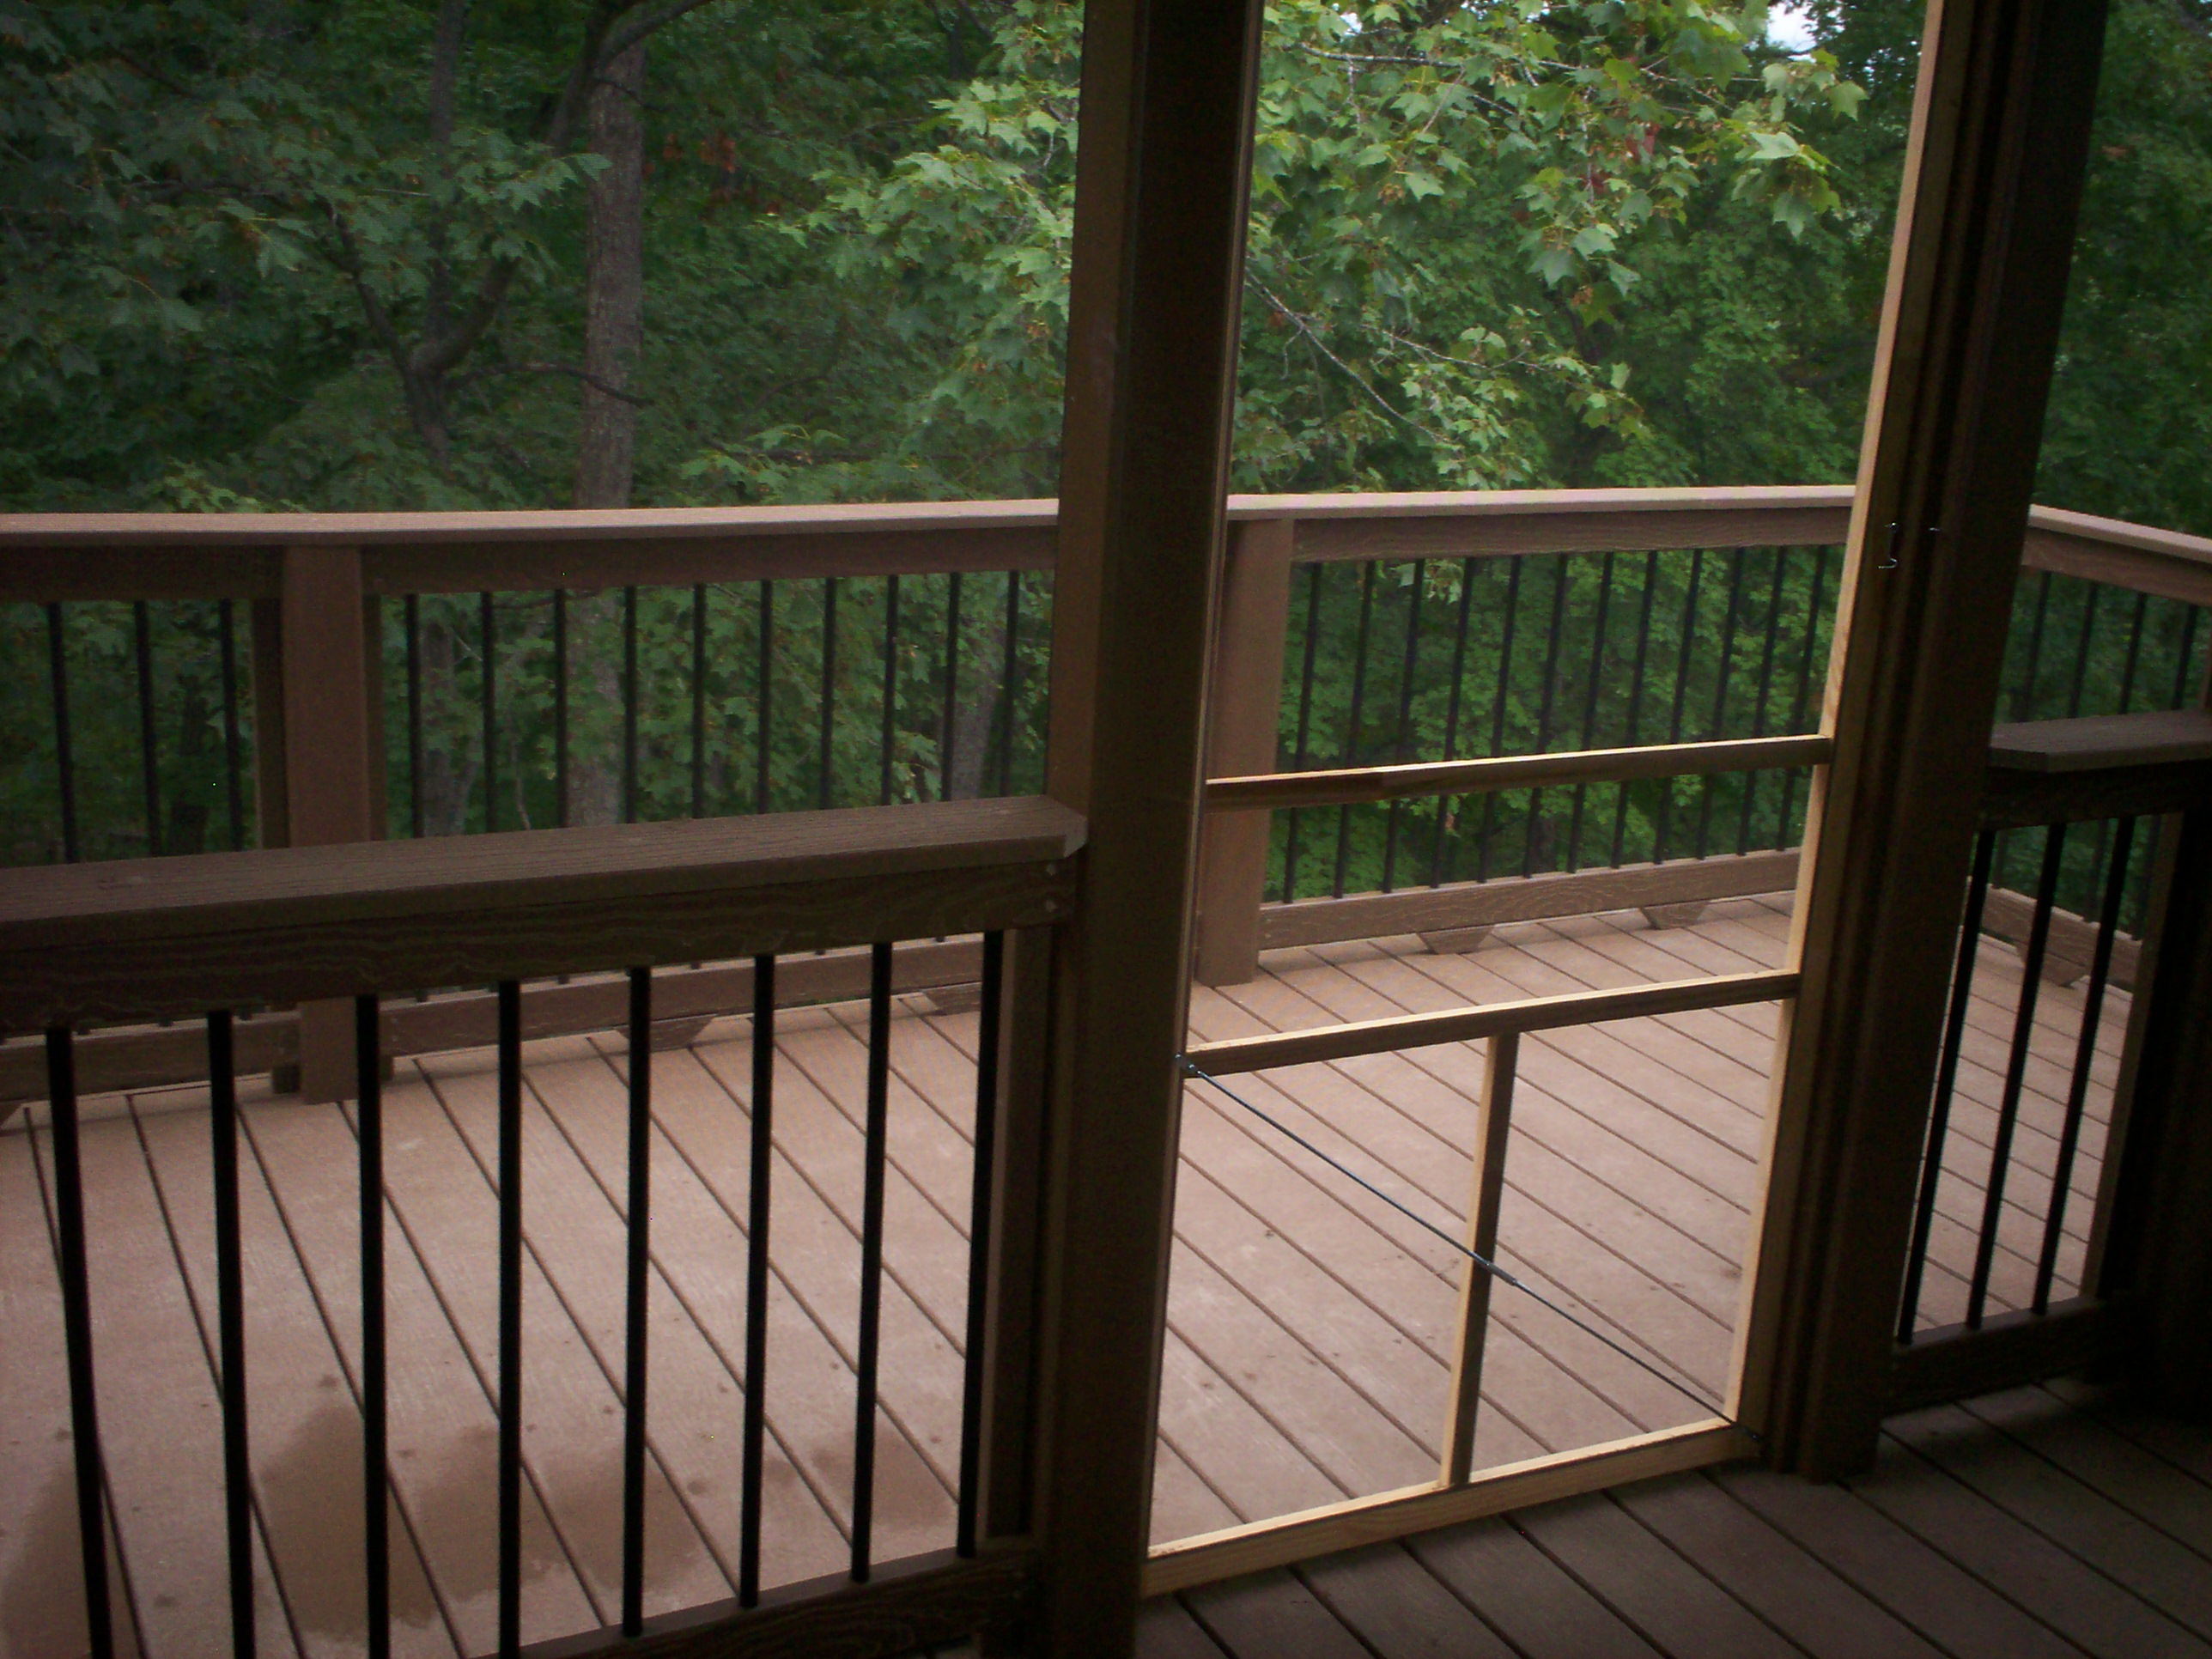 tan evergrain decking matched with black and tan railing for patio decor ideas